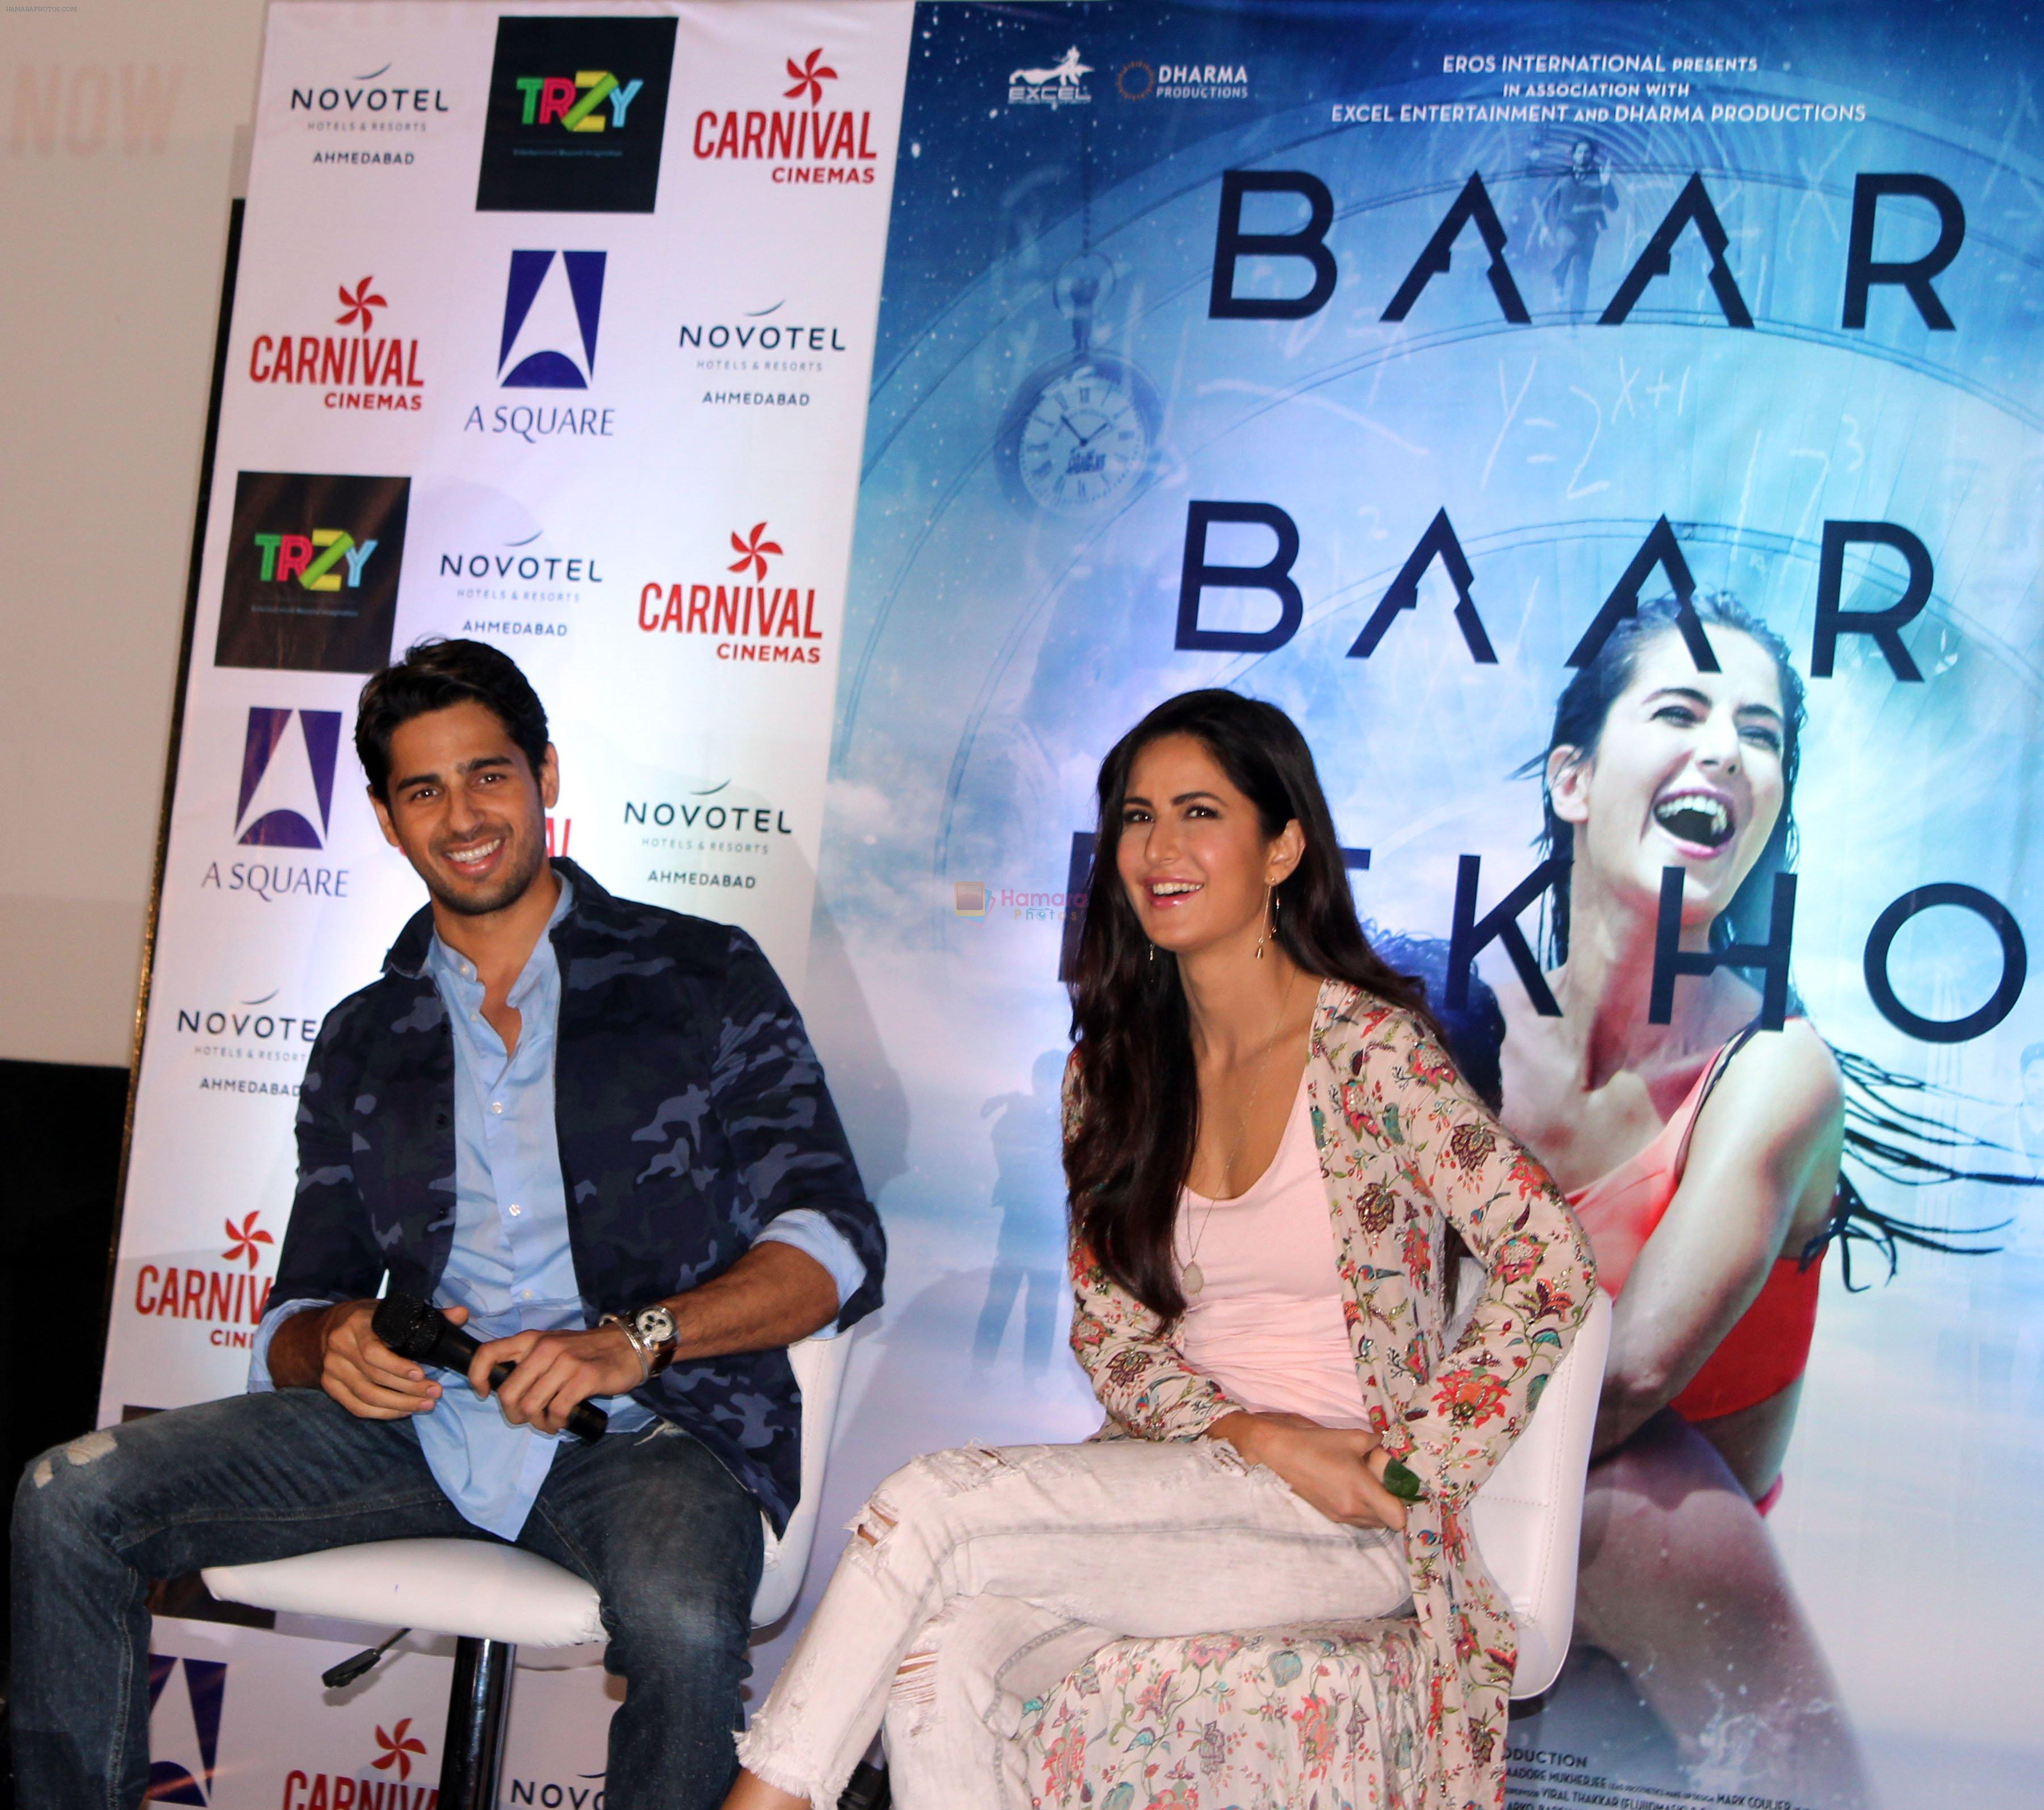 Katrina Kaif and Sidharth Malhotra promote Baar Baar Dekho in Ahmedabad at Carnival Cinemas on 30th Aug 2016